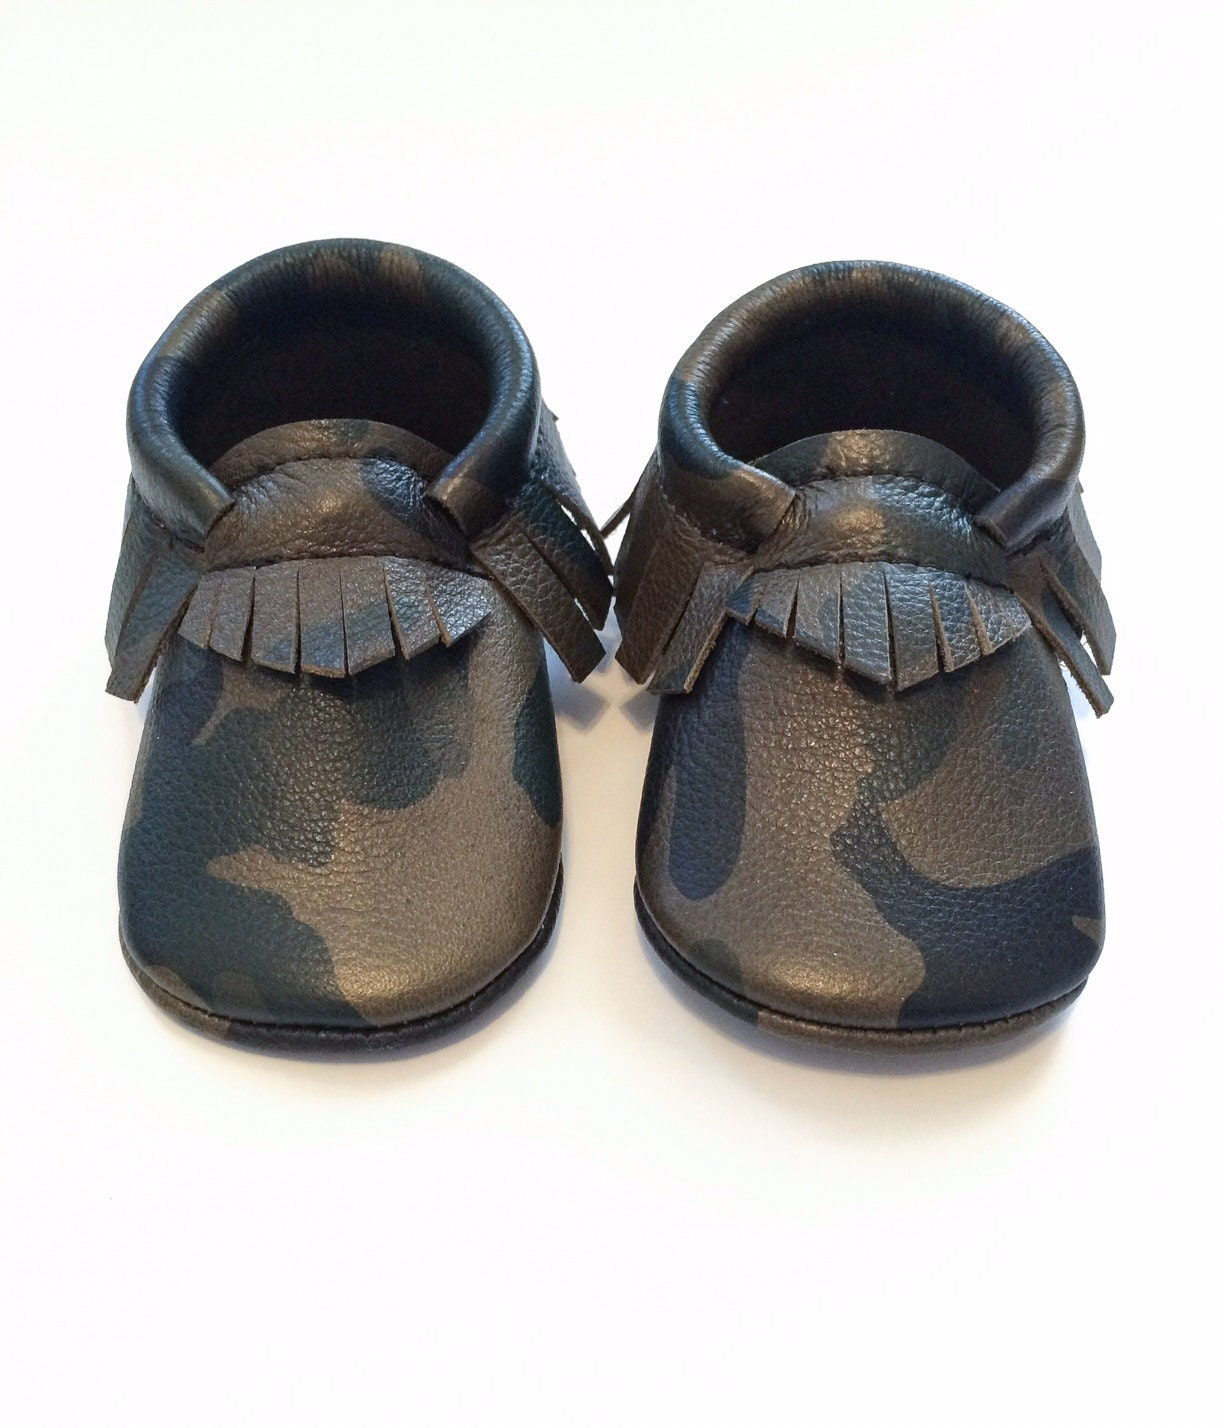 You searched for: baby boy moccasins! Etsy is the home to thousands of handmade, vintage, and one-of-a-kind products and gifts related to your search. No matter what you're looking for or where you are in the world, our global marketplace of sellers can help you .